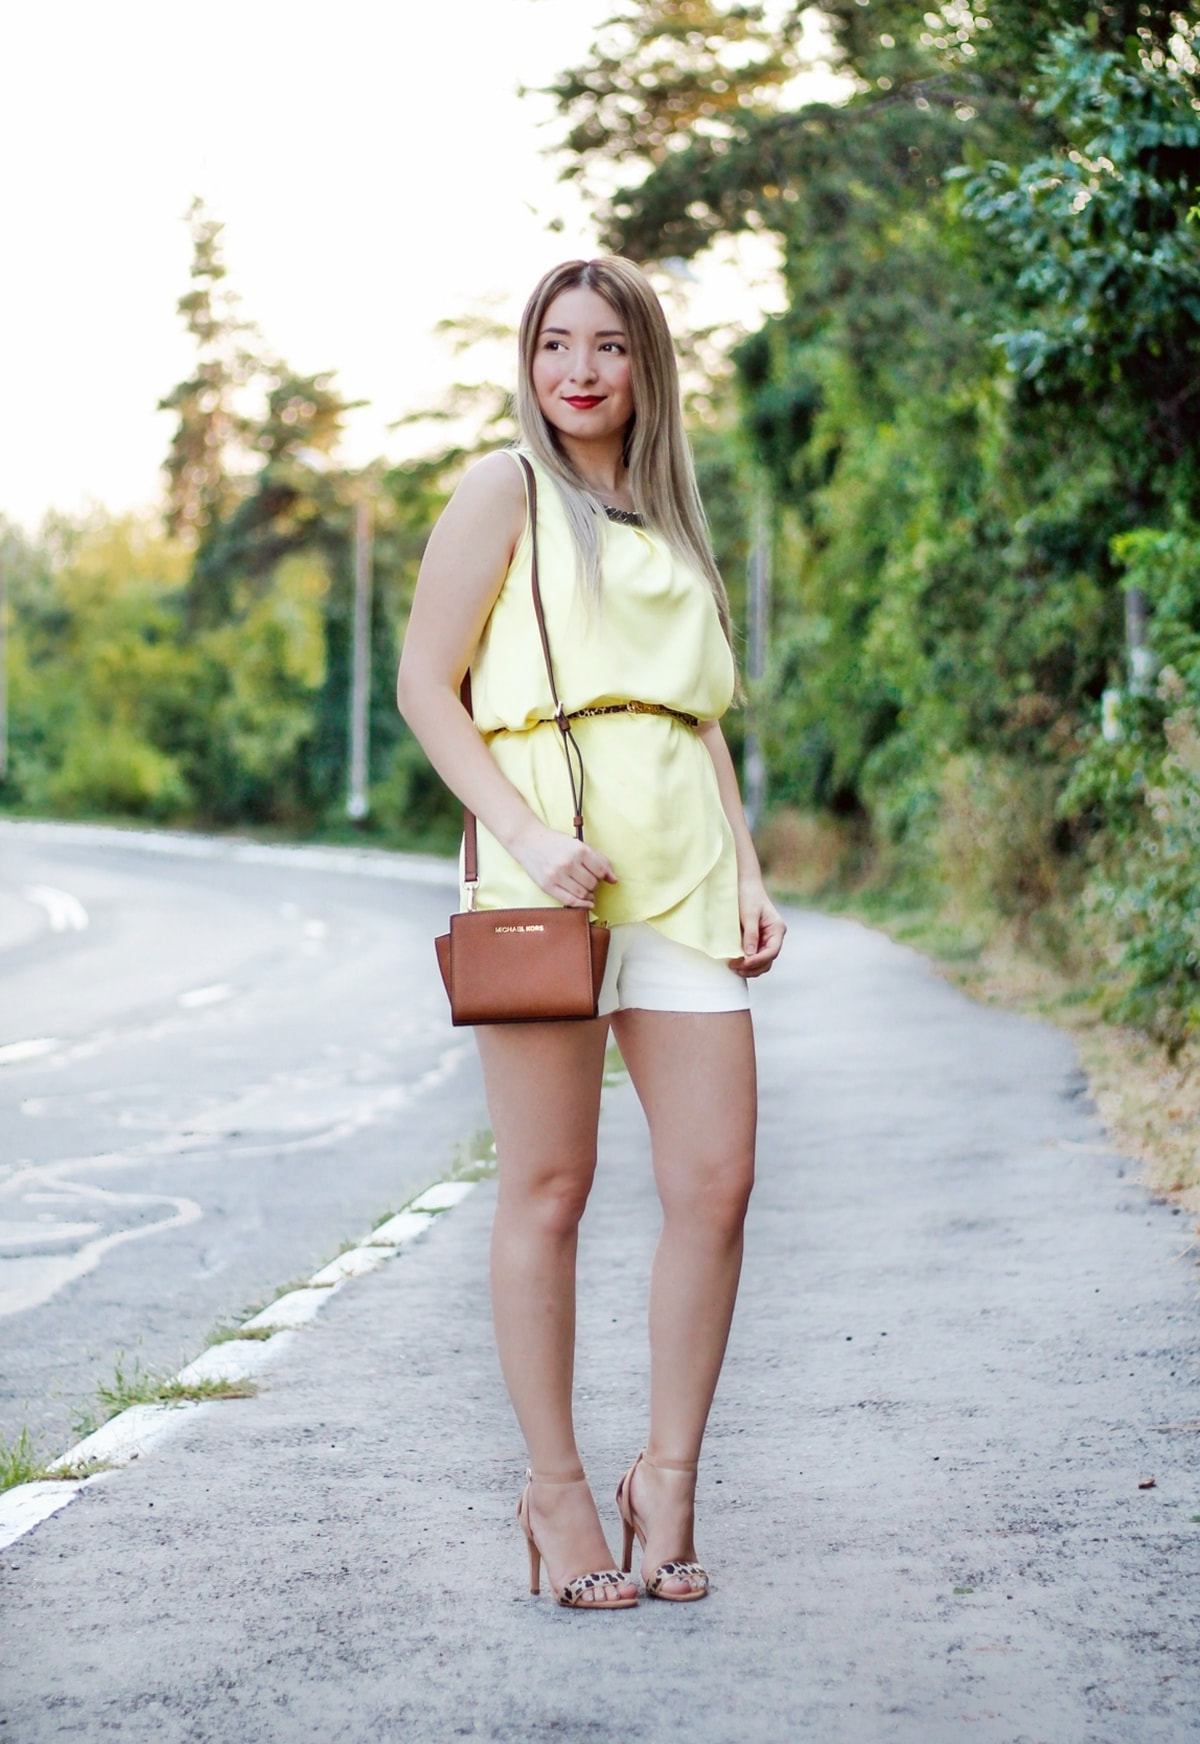 Street style: yellow top, leopars print belt and sandals, shoes, heels, michael kors bag, mini selma, andreea ristea blog